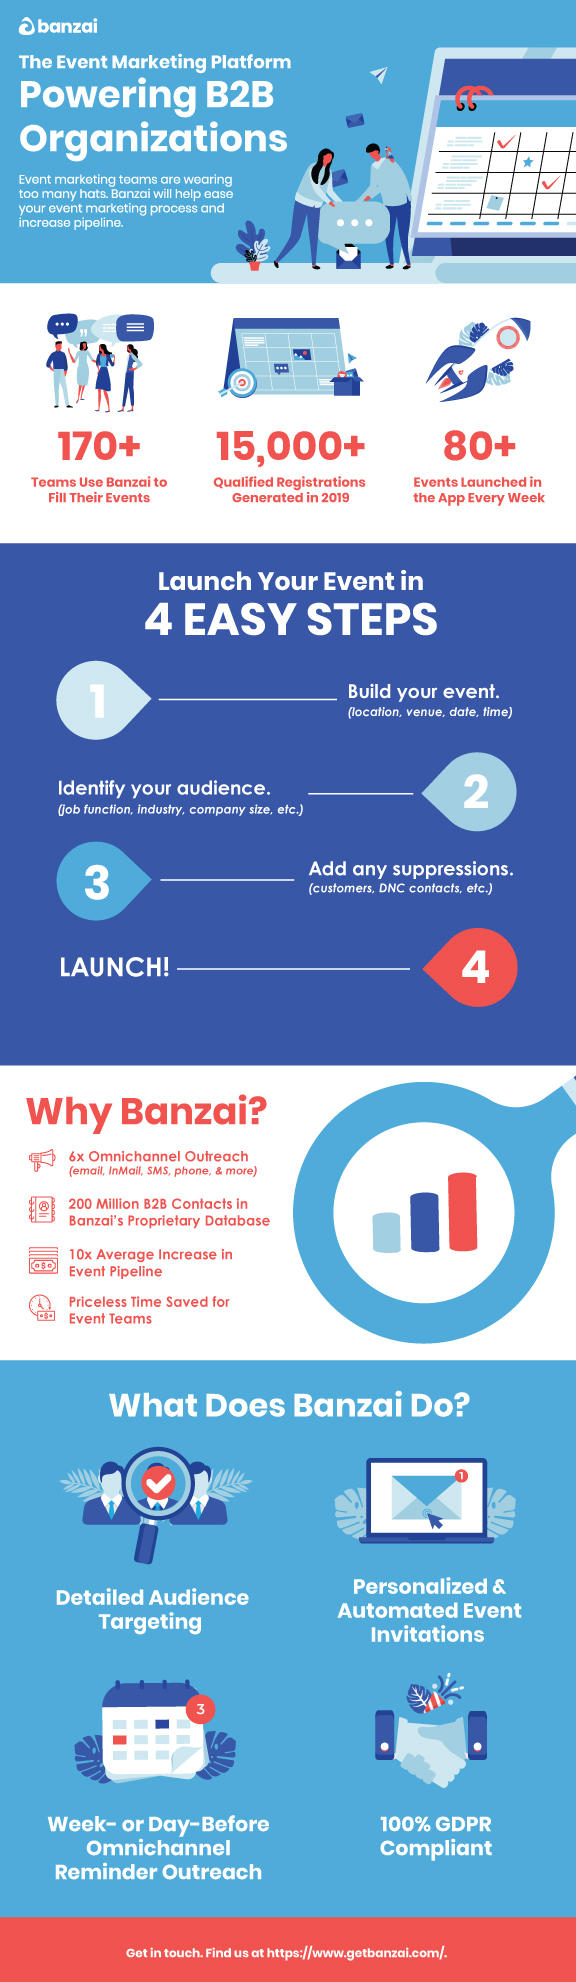 Why Banzai Infographic